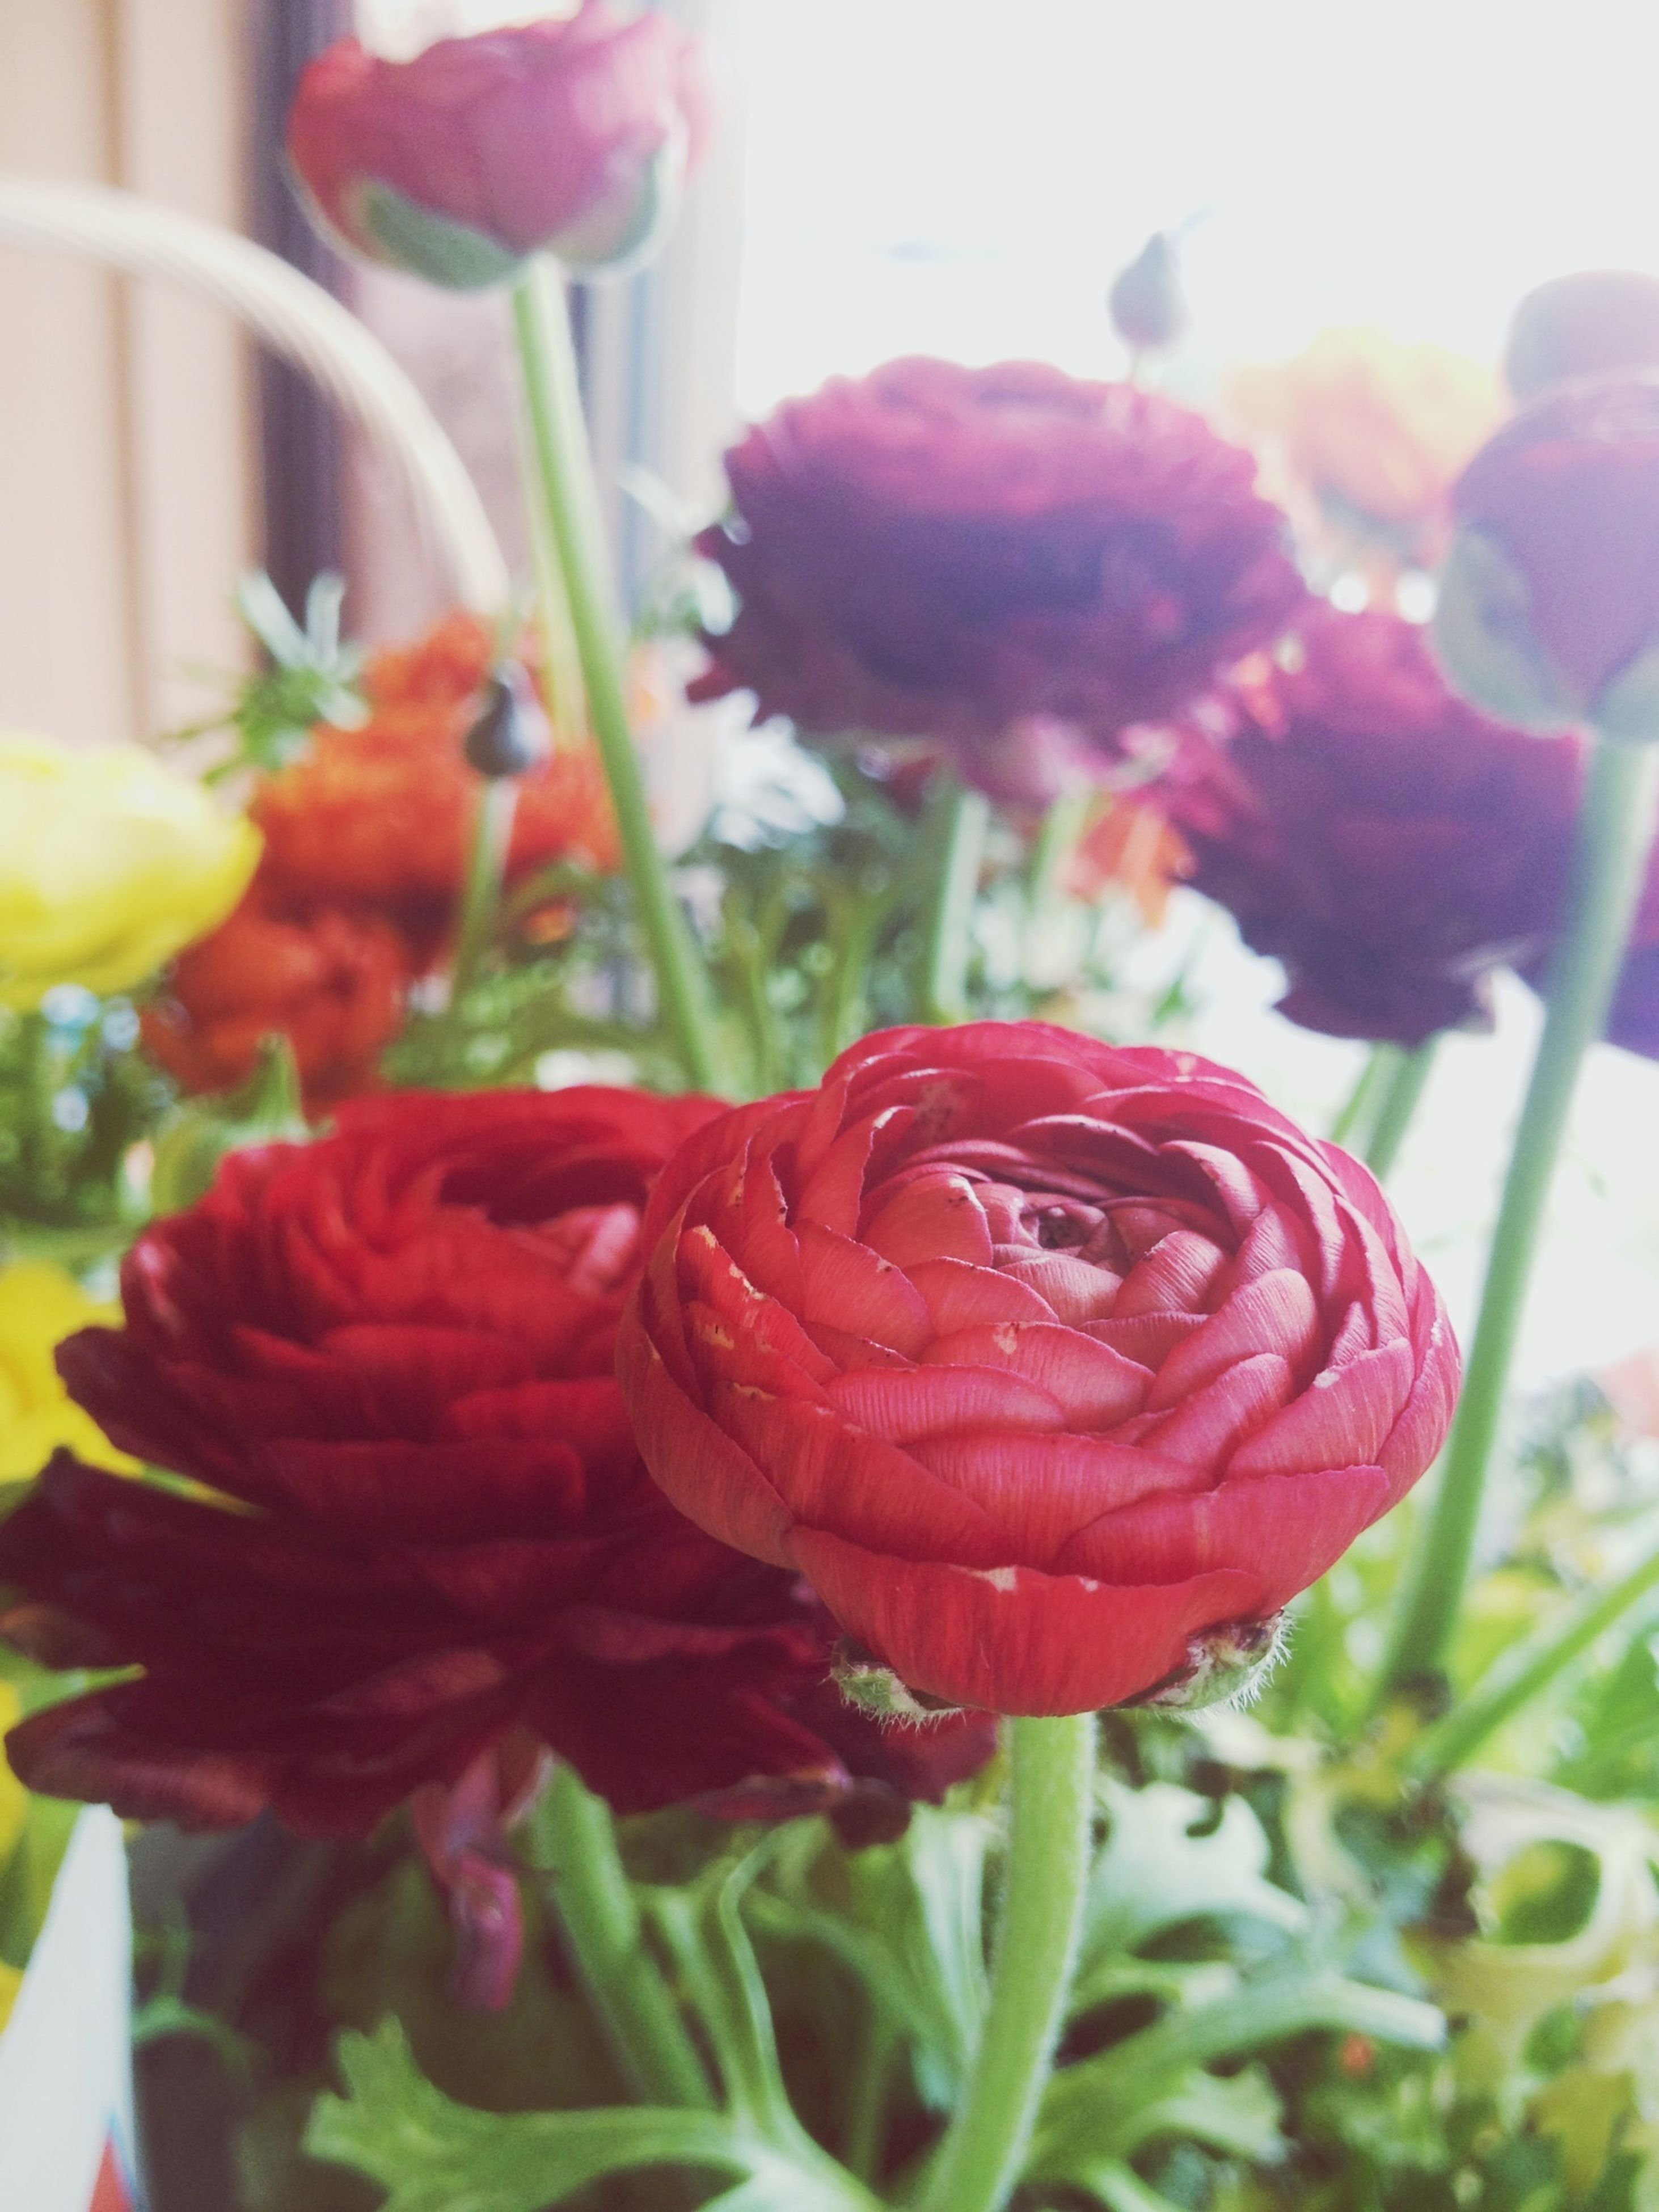 flower, petal, freshness, fragility, flower head, growth, focus on foreground, close-up, plant, beauty in nature, blooming, nature, red, rose - flower, stem, pink color, bud, in bloom, park - man made space, day